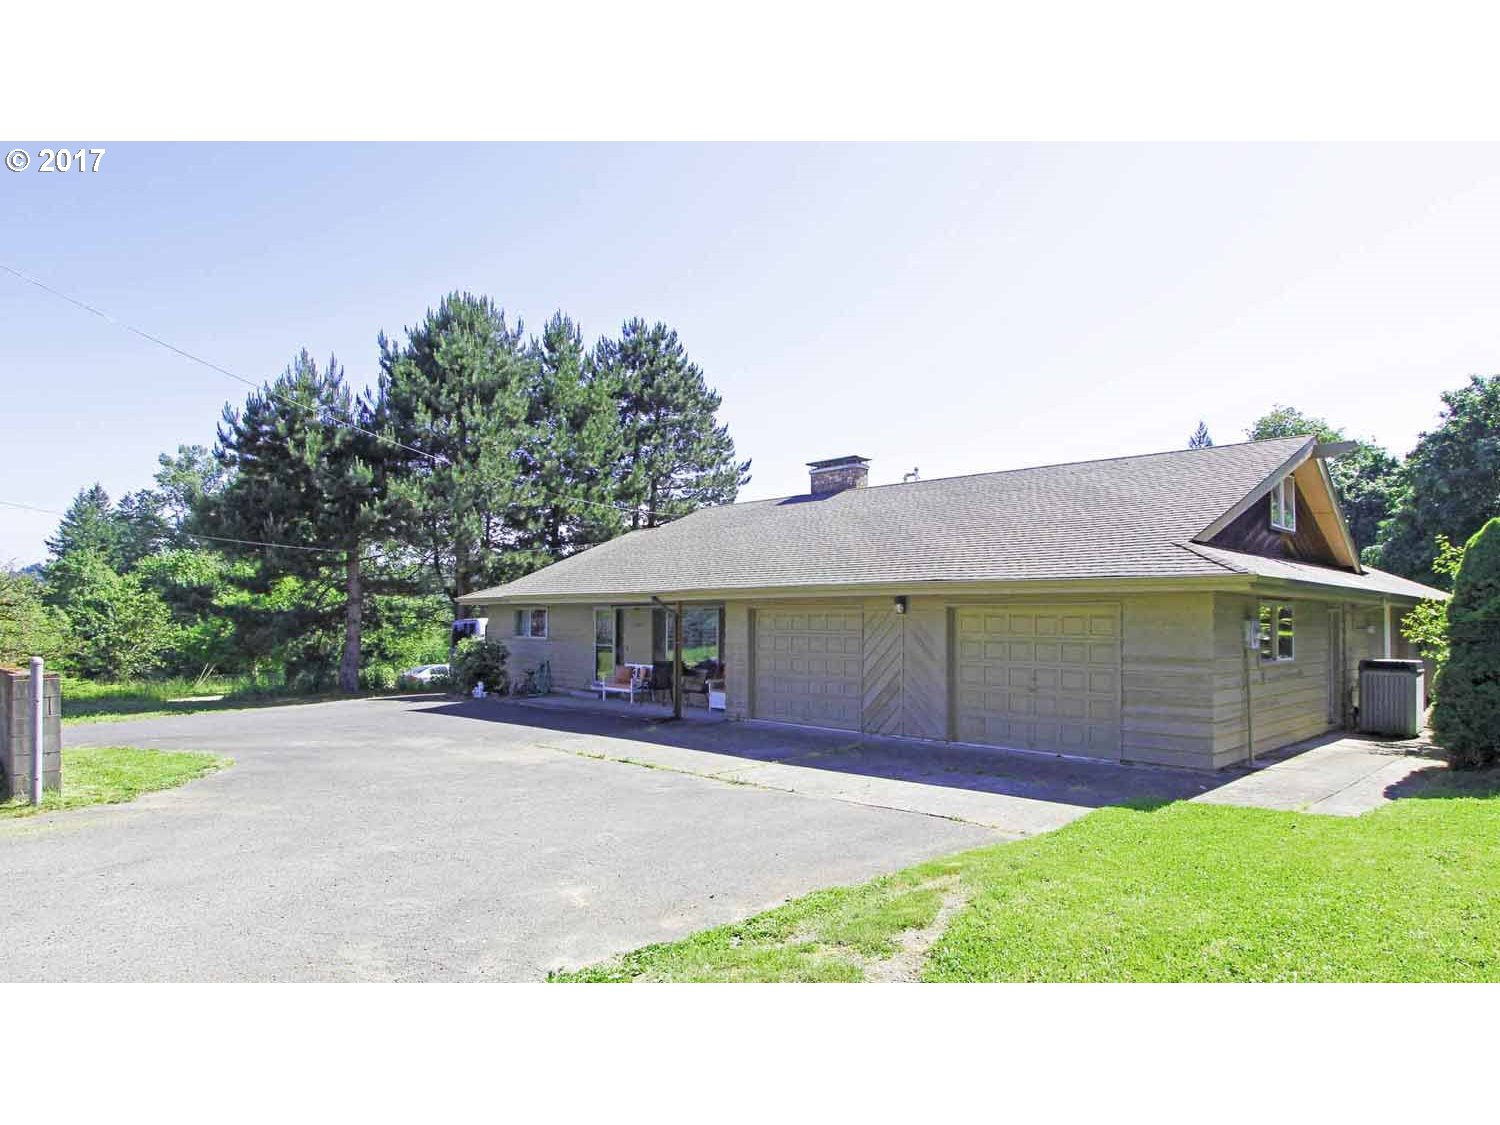 17560 S HOLLY LN, Oregon City, OR 97045